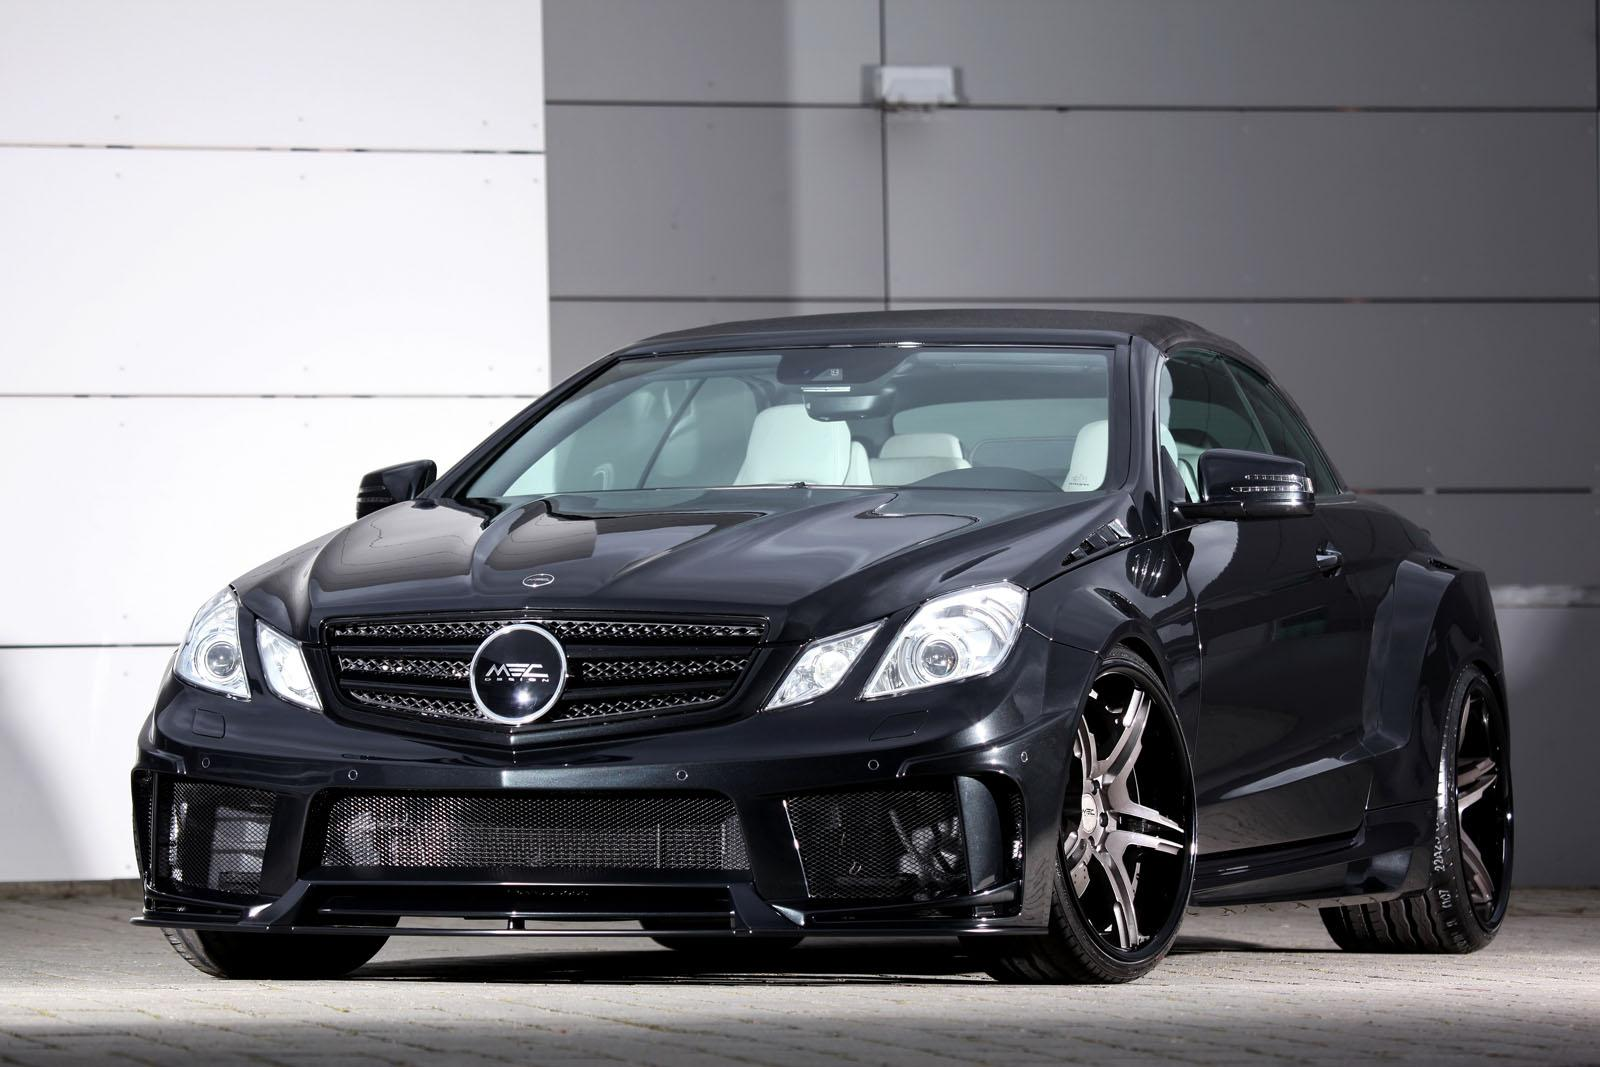 Official mec design mercedes benz e class gtspirit for Mercedes benz tuning